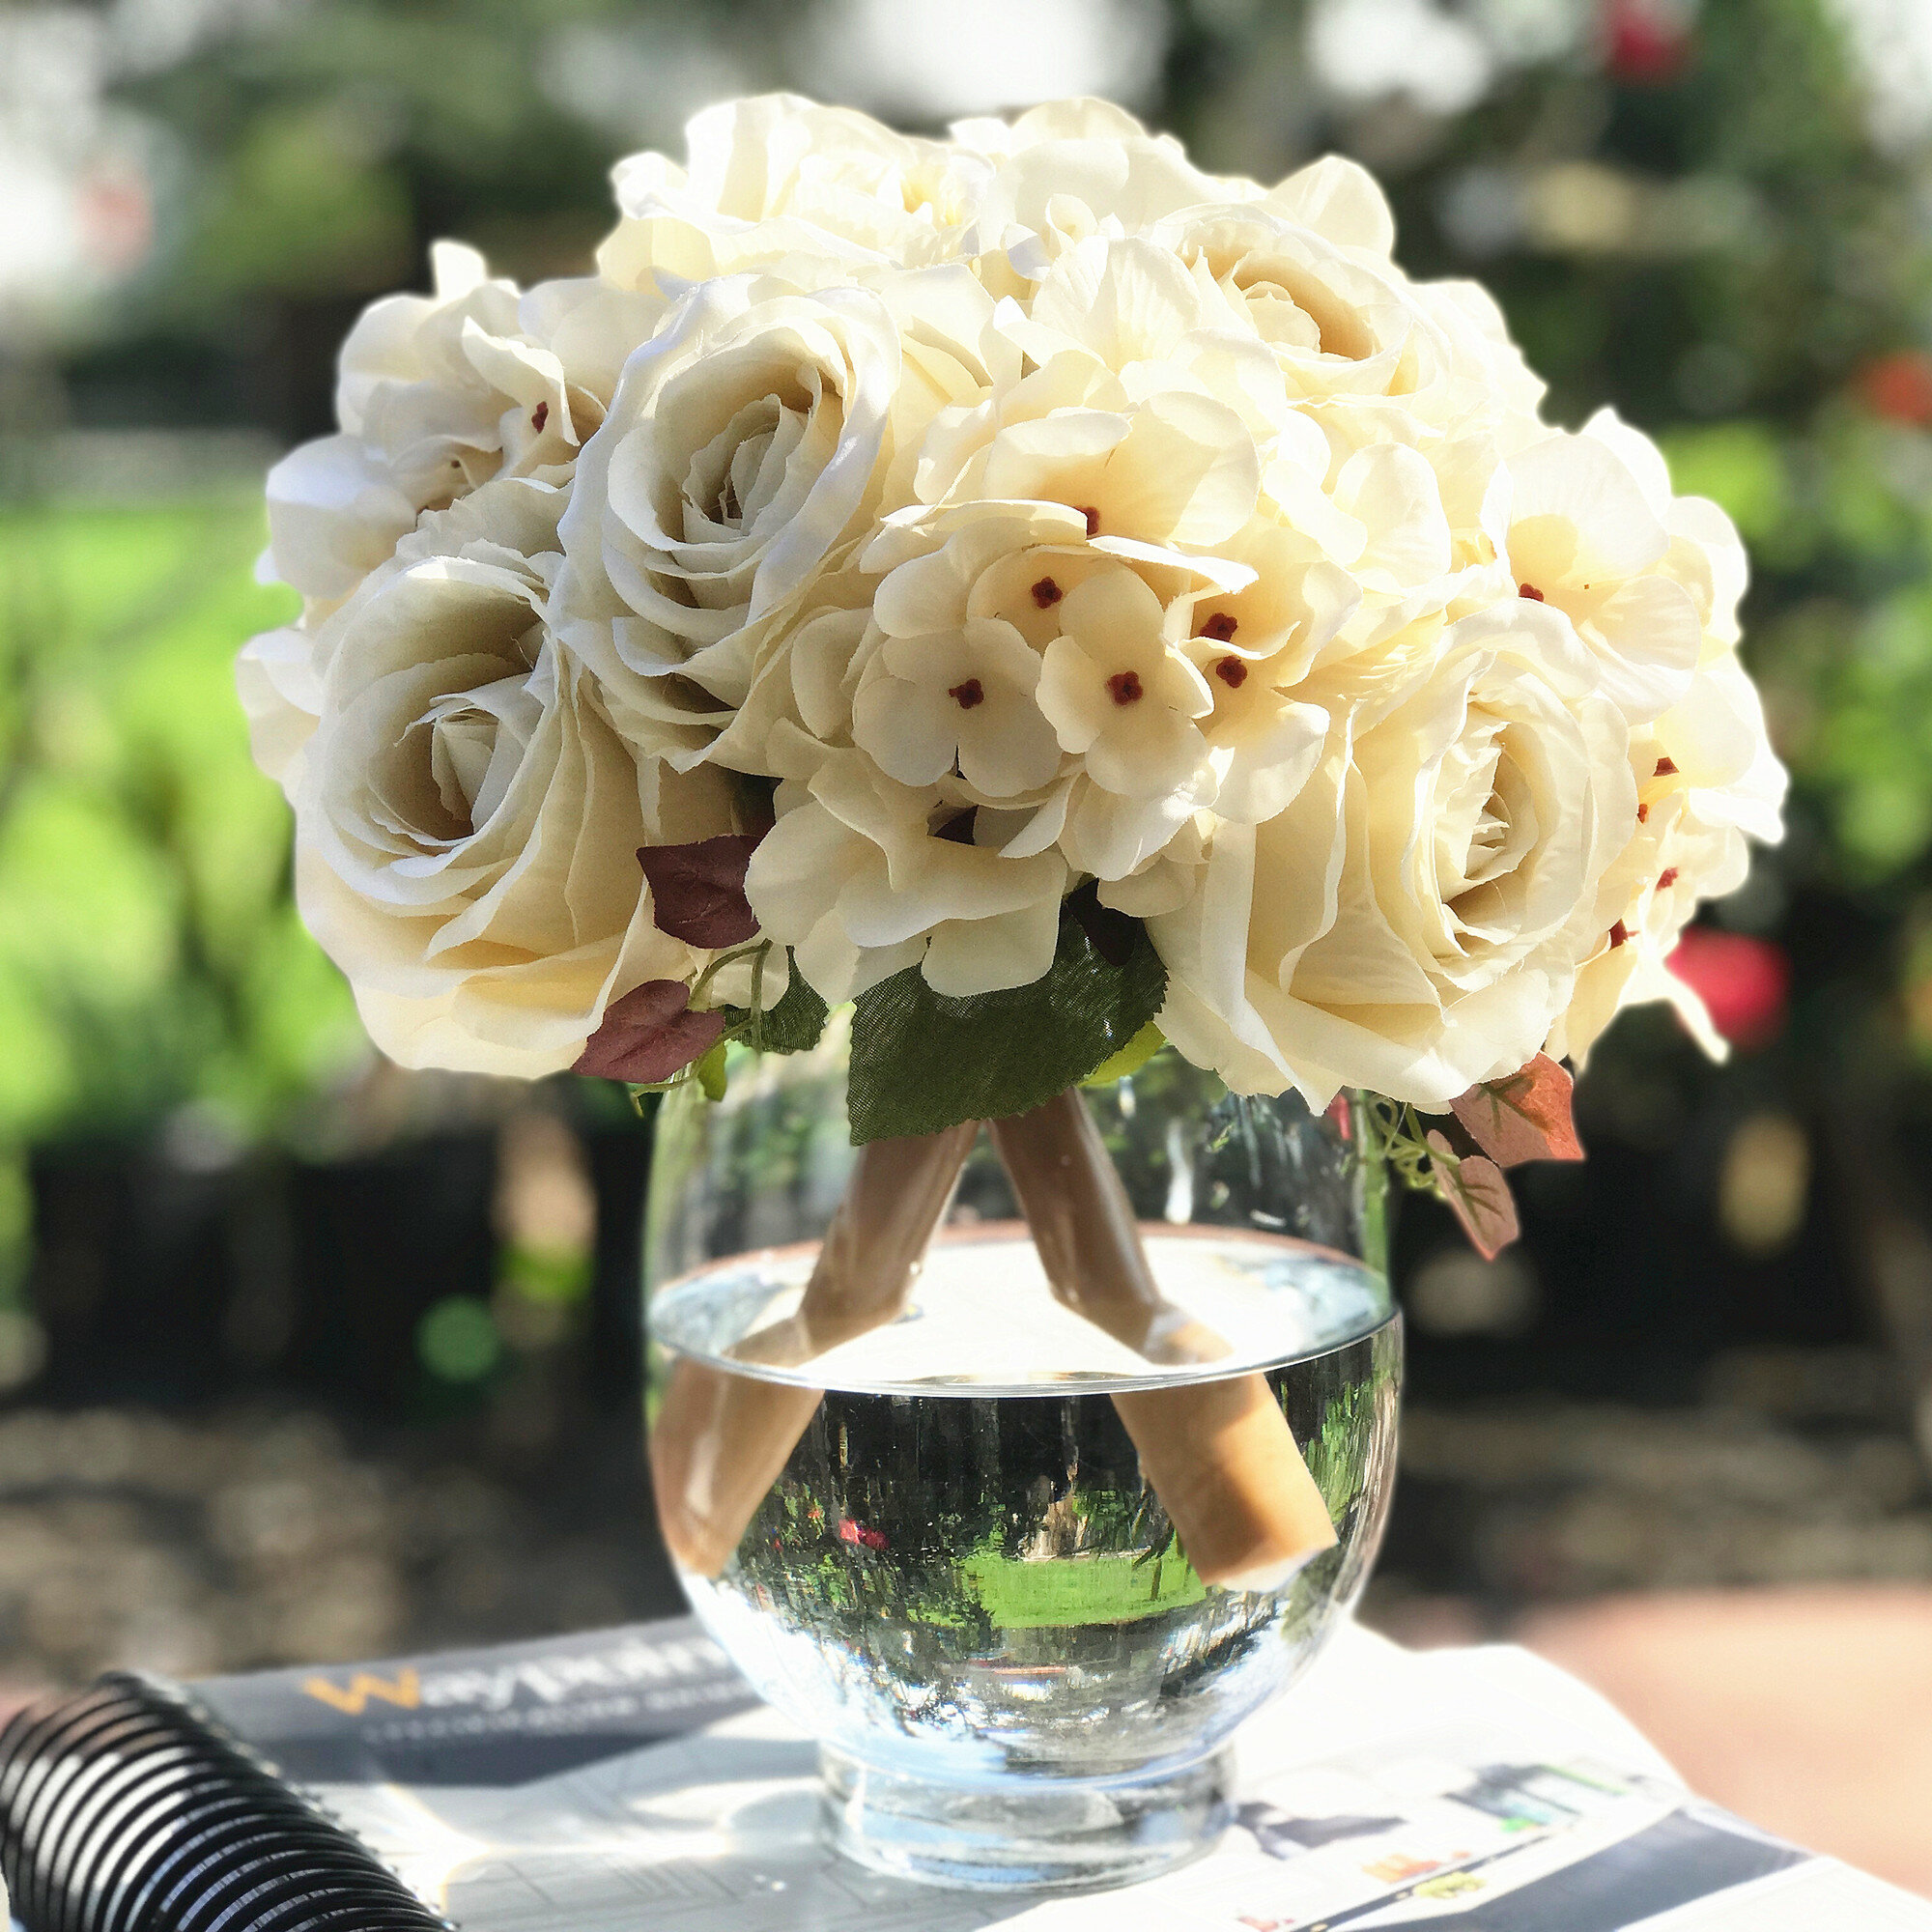 House Of Hampton Artificial Rose And Hydrangea Mixed Floral Arrangements And Centerpieces In Vase Reviews Wayfair